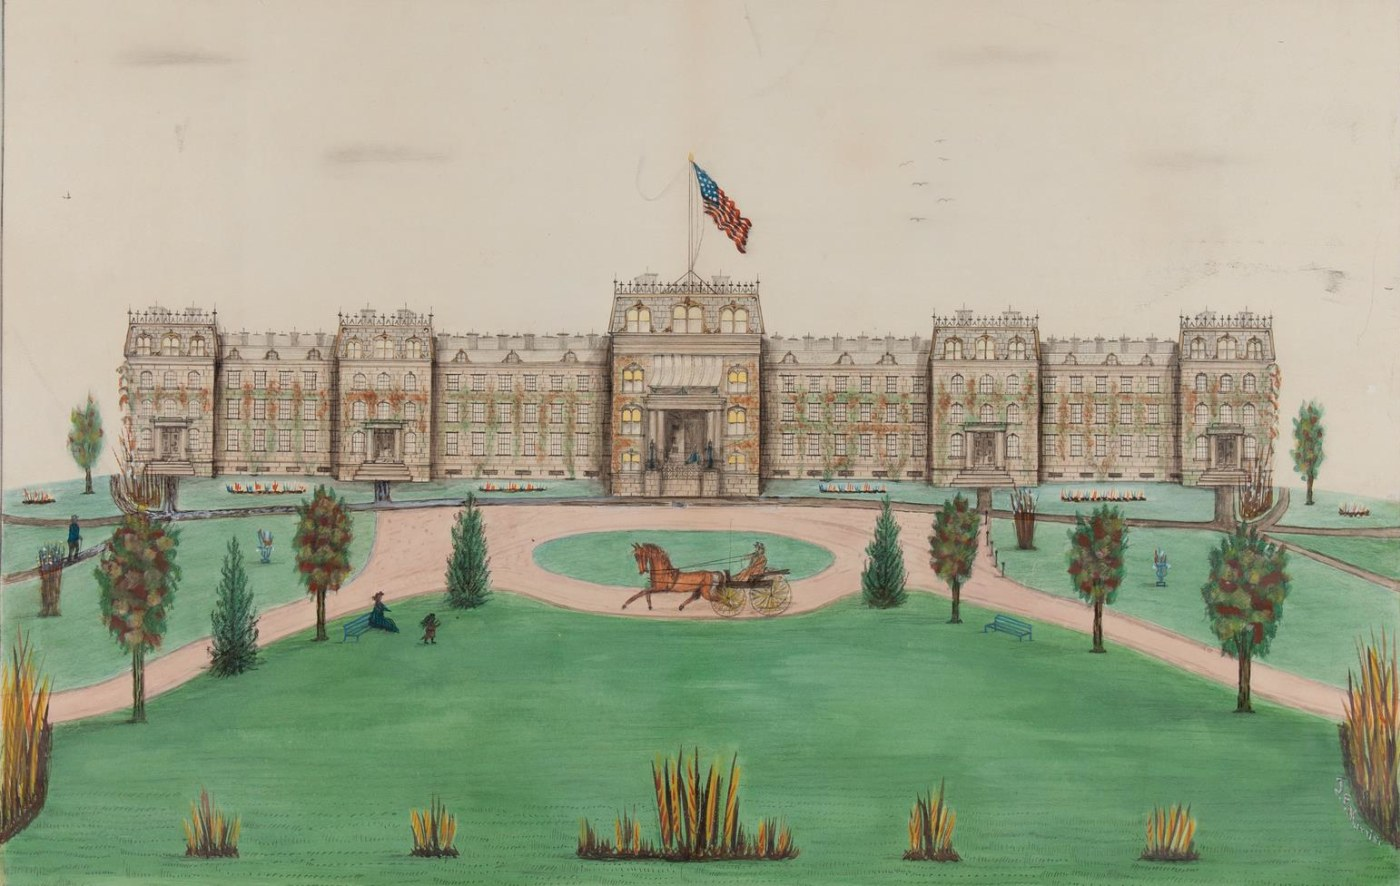 The collection has pieces of historical significance, such as those dealing with 18th- or 19th-century American history.